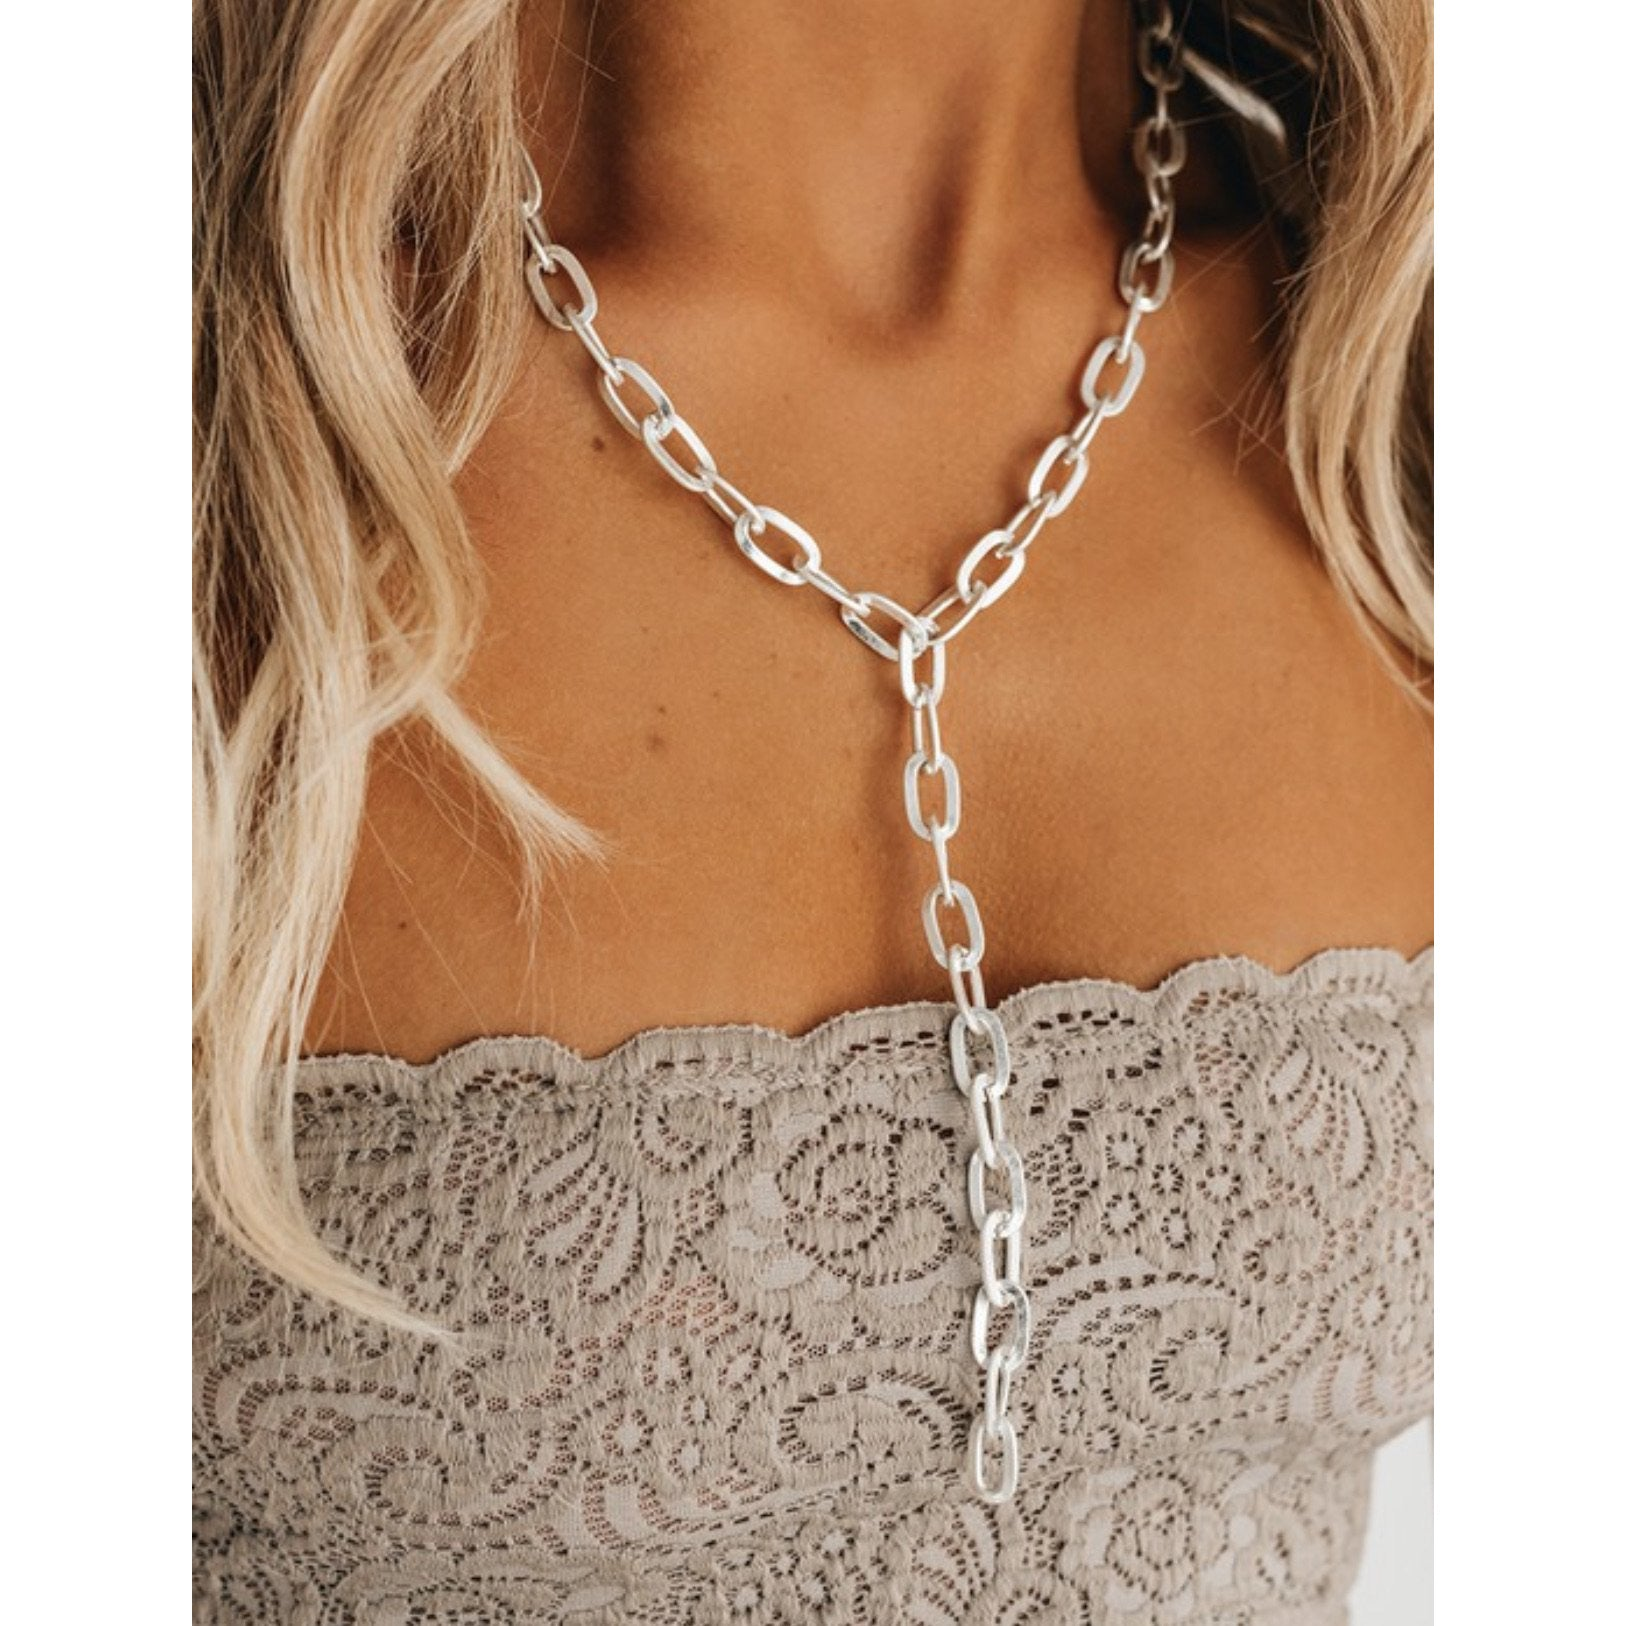 Chain Lariat Boho Necklace - All Blinged Out/Calamity's